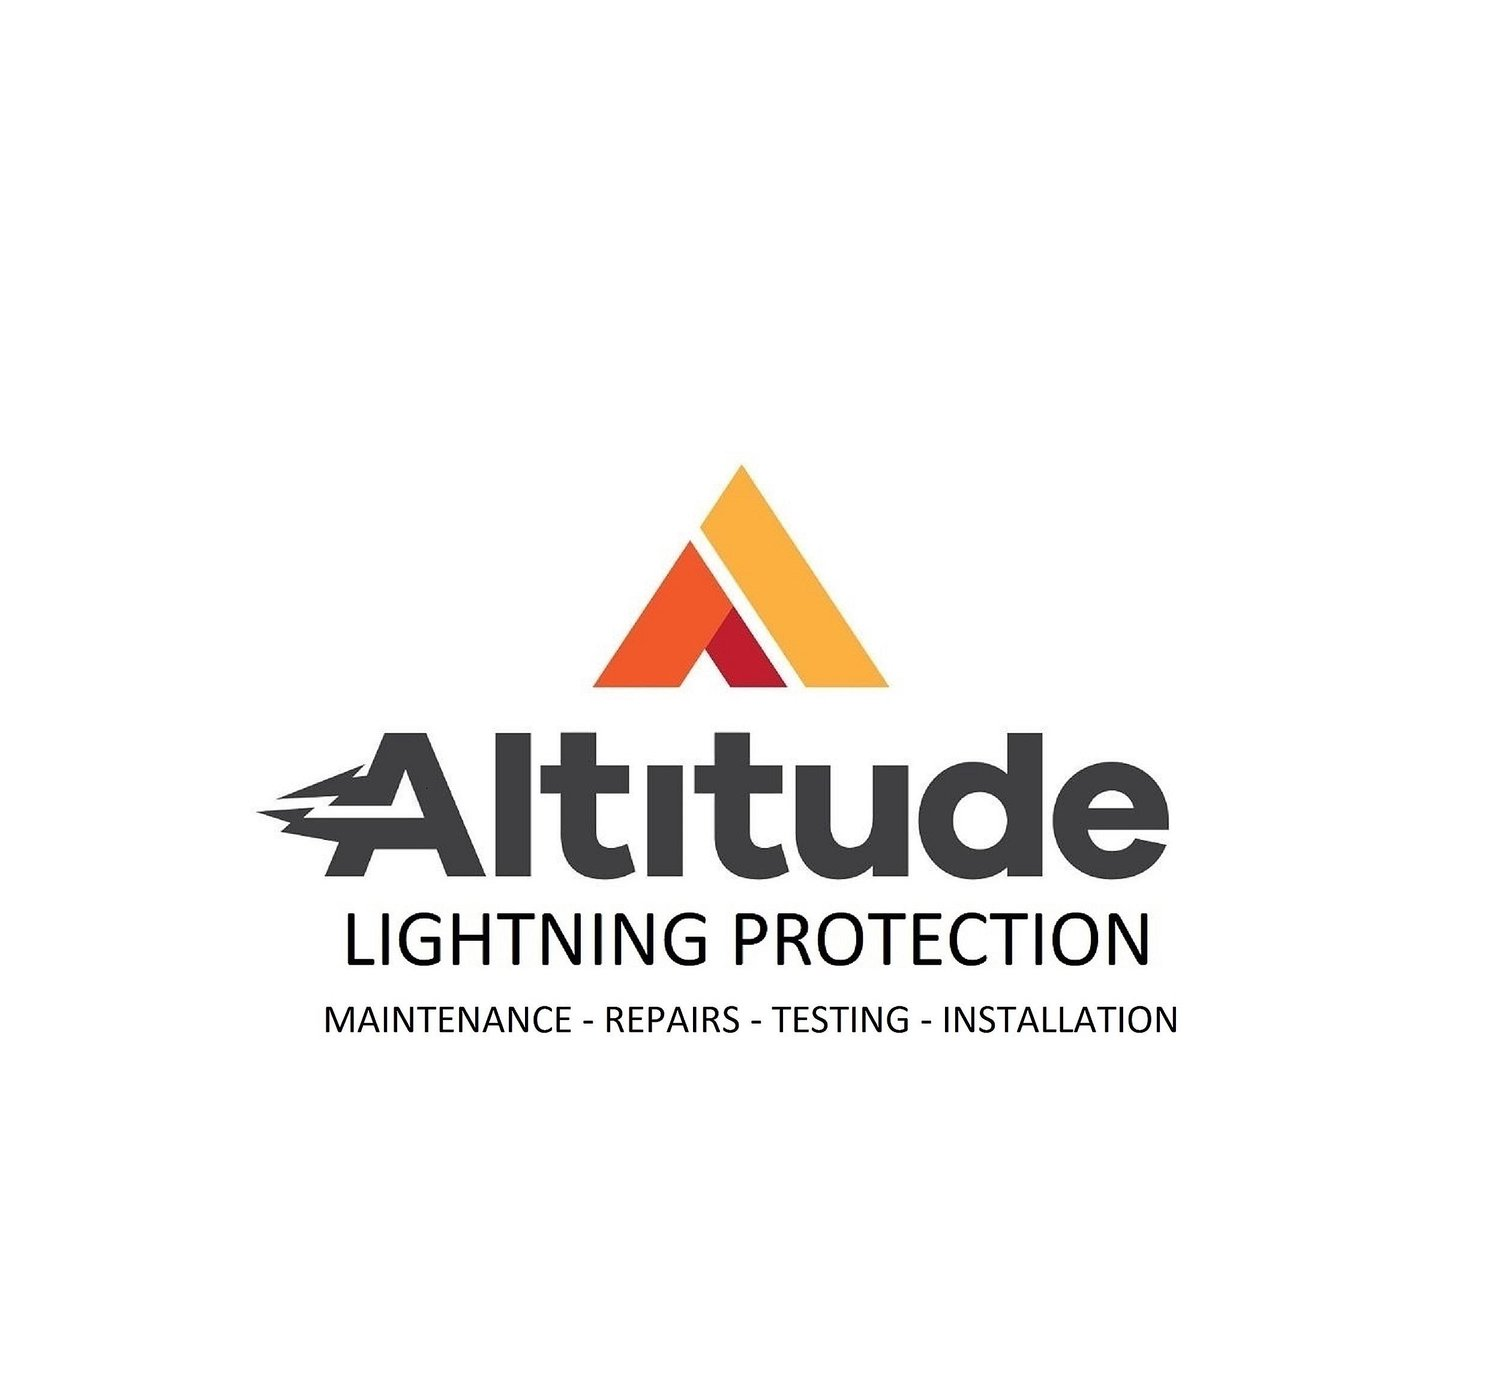 Altitude lightning protection